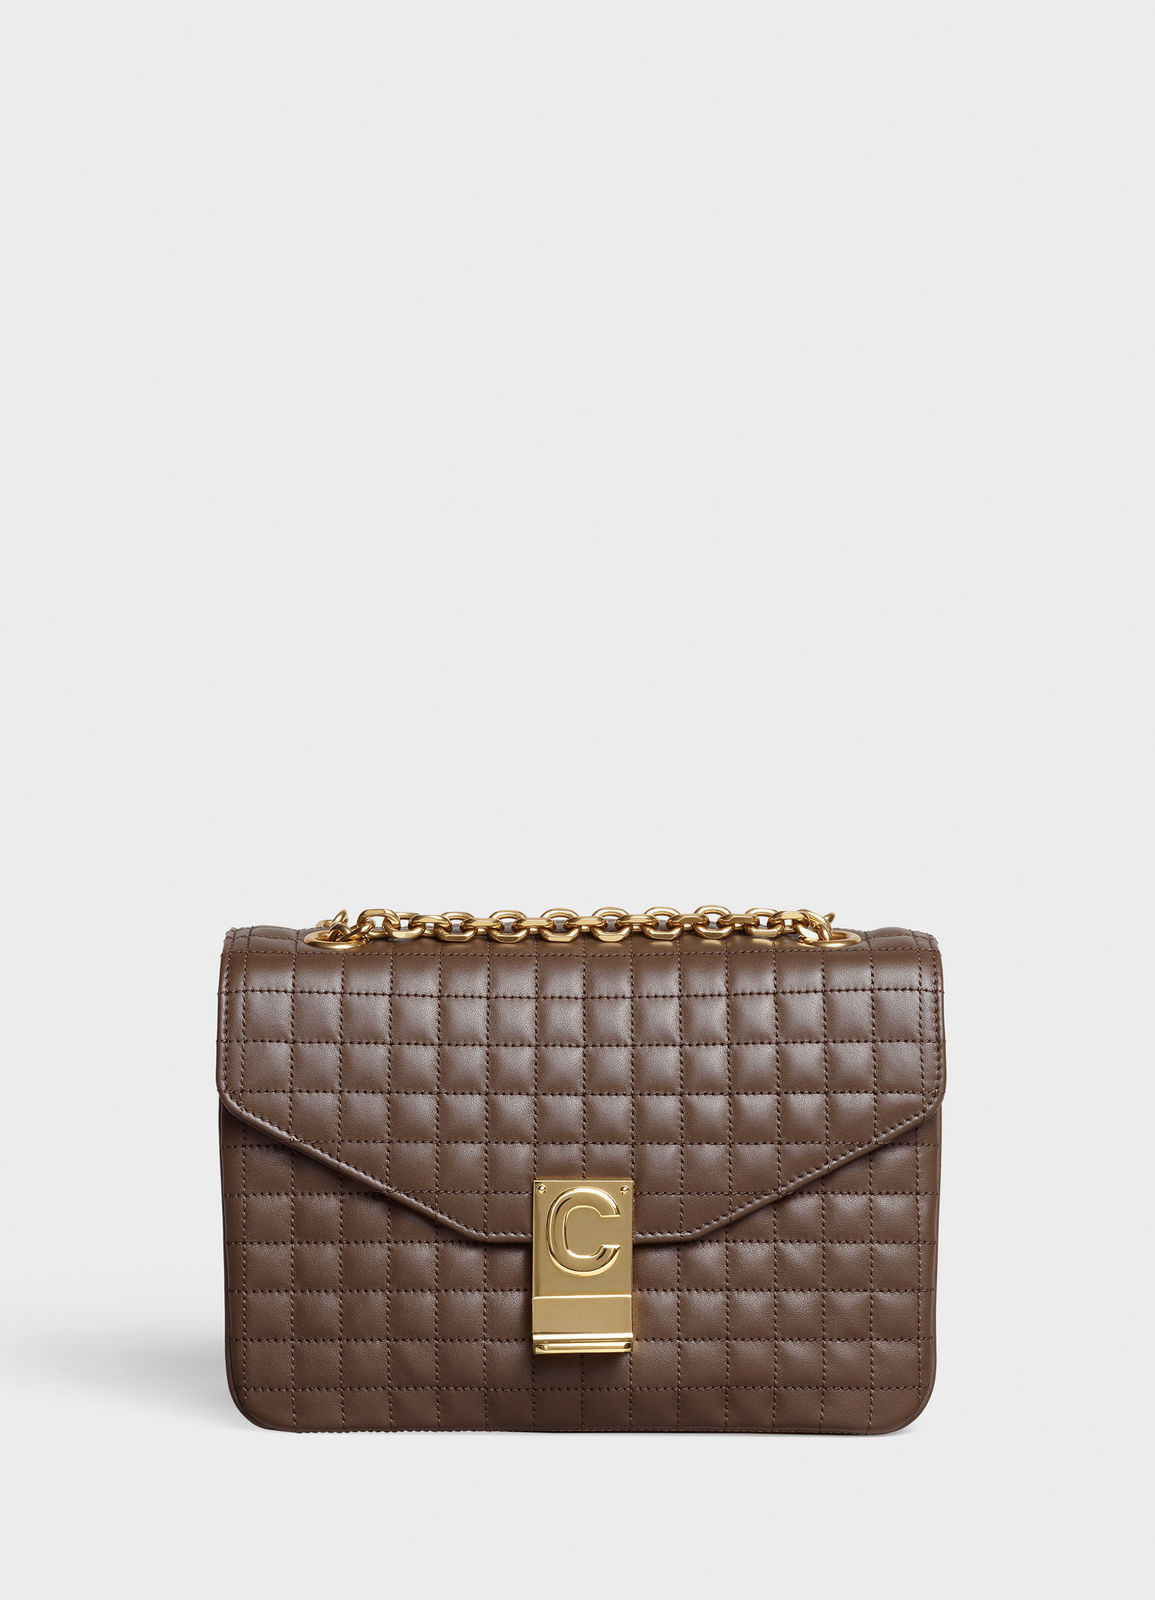 CELINE MEDIUM C BAG IN BICOLOUR QUILTED CALFSKIN CL87253 Khaki